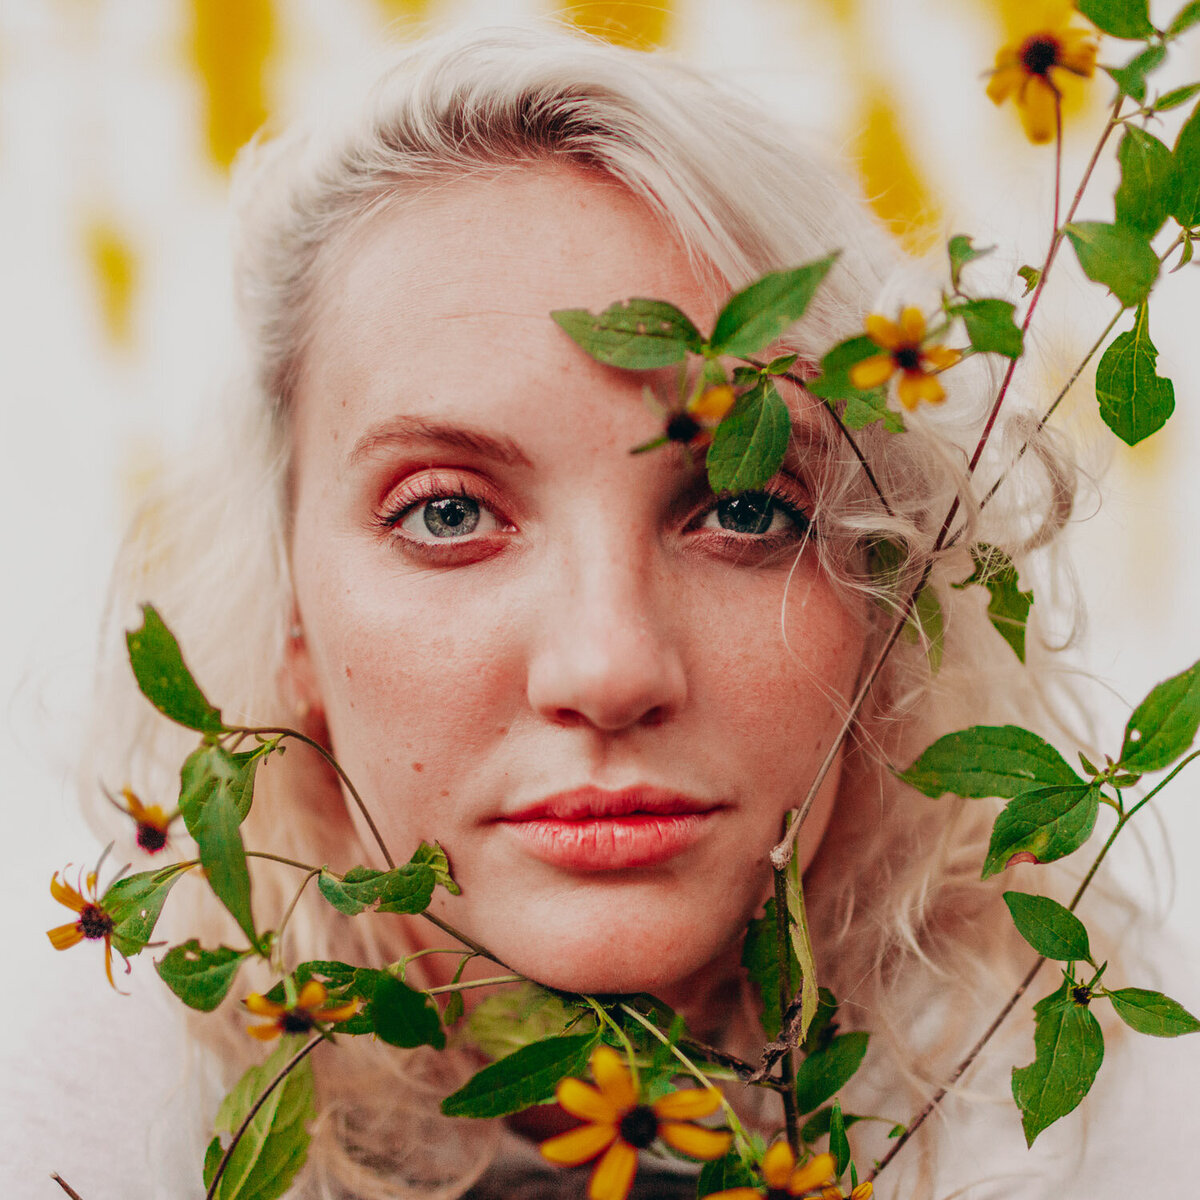 nashville-portrait-photographer-daisy-yellow-flower